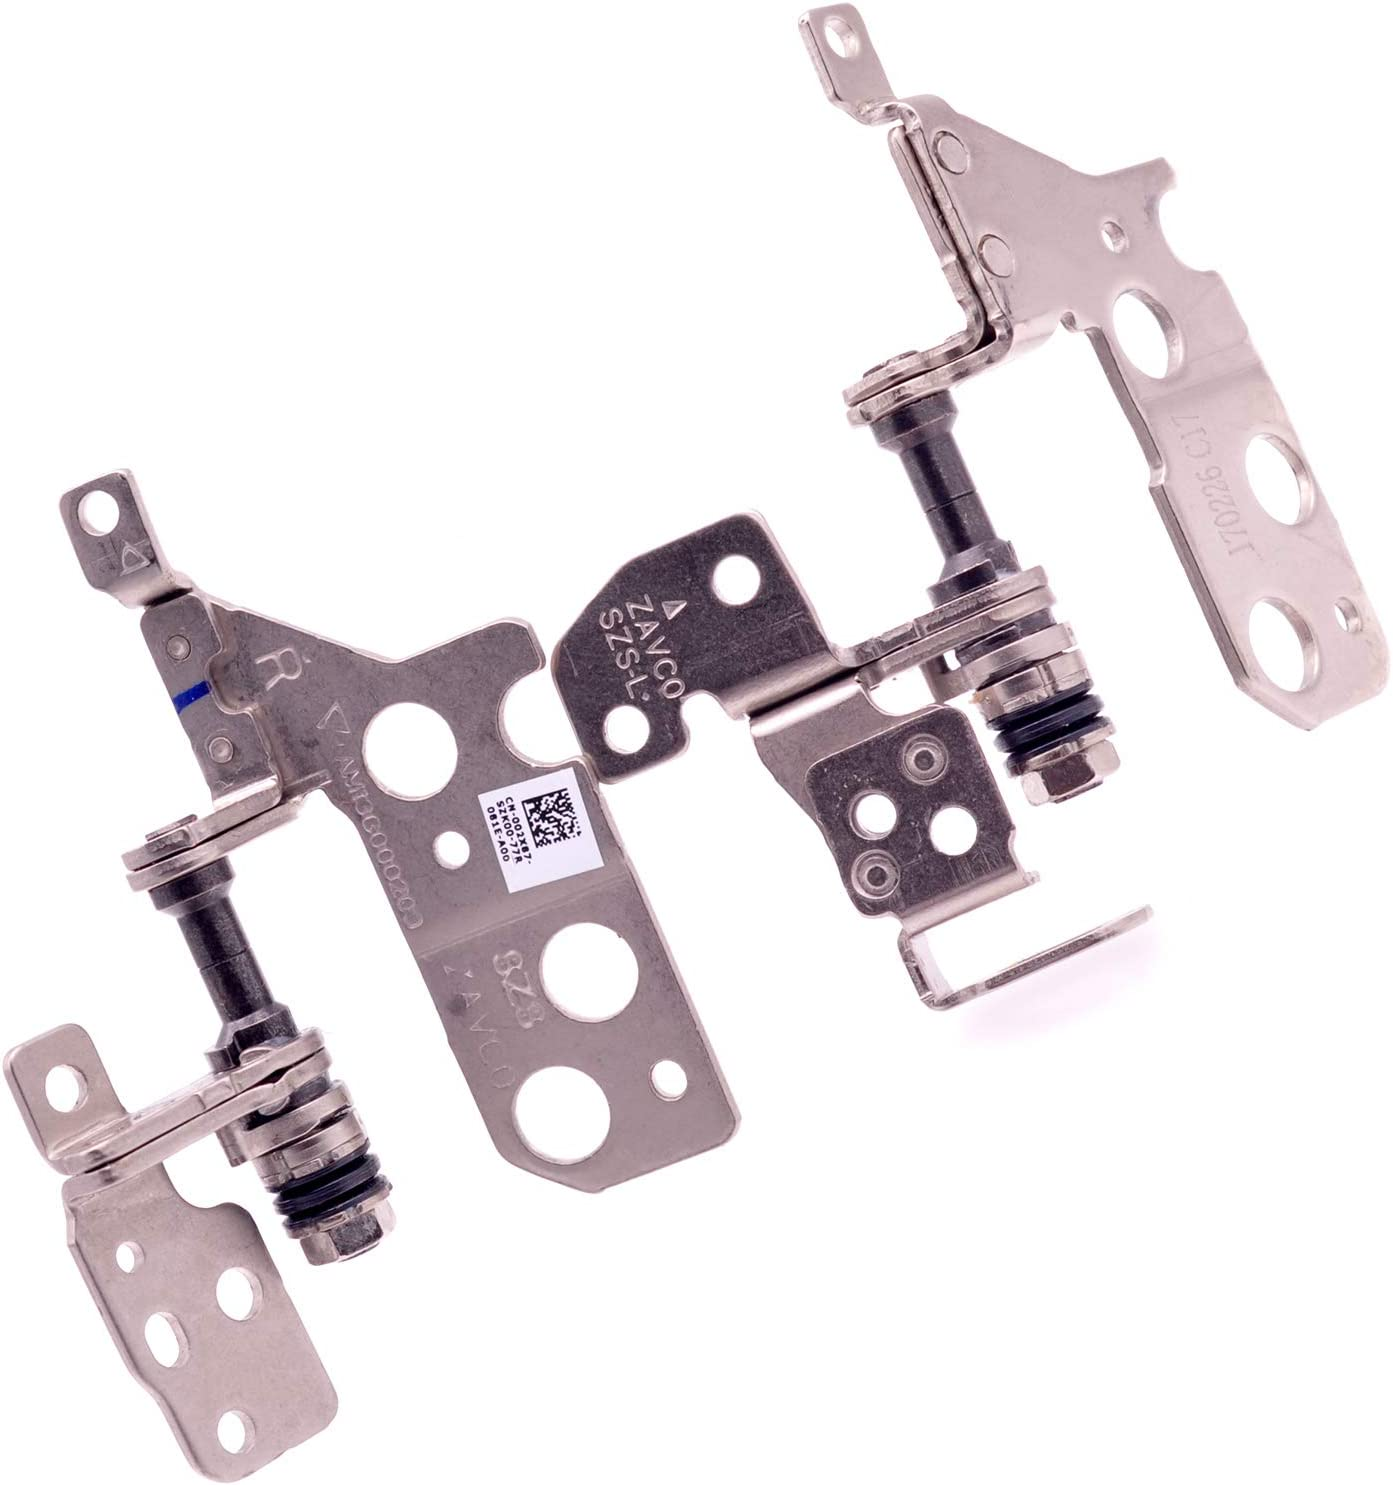 Deal4GO R & L LCD Hinge Axis Screen Hinges Replacement for Dell Inspiron 15 5000 5543 5545 5547 5548 (Non-Touchscreen)